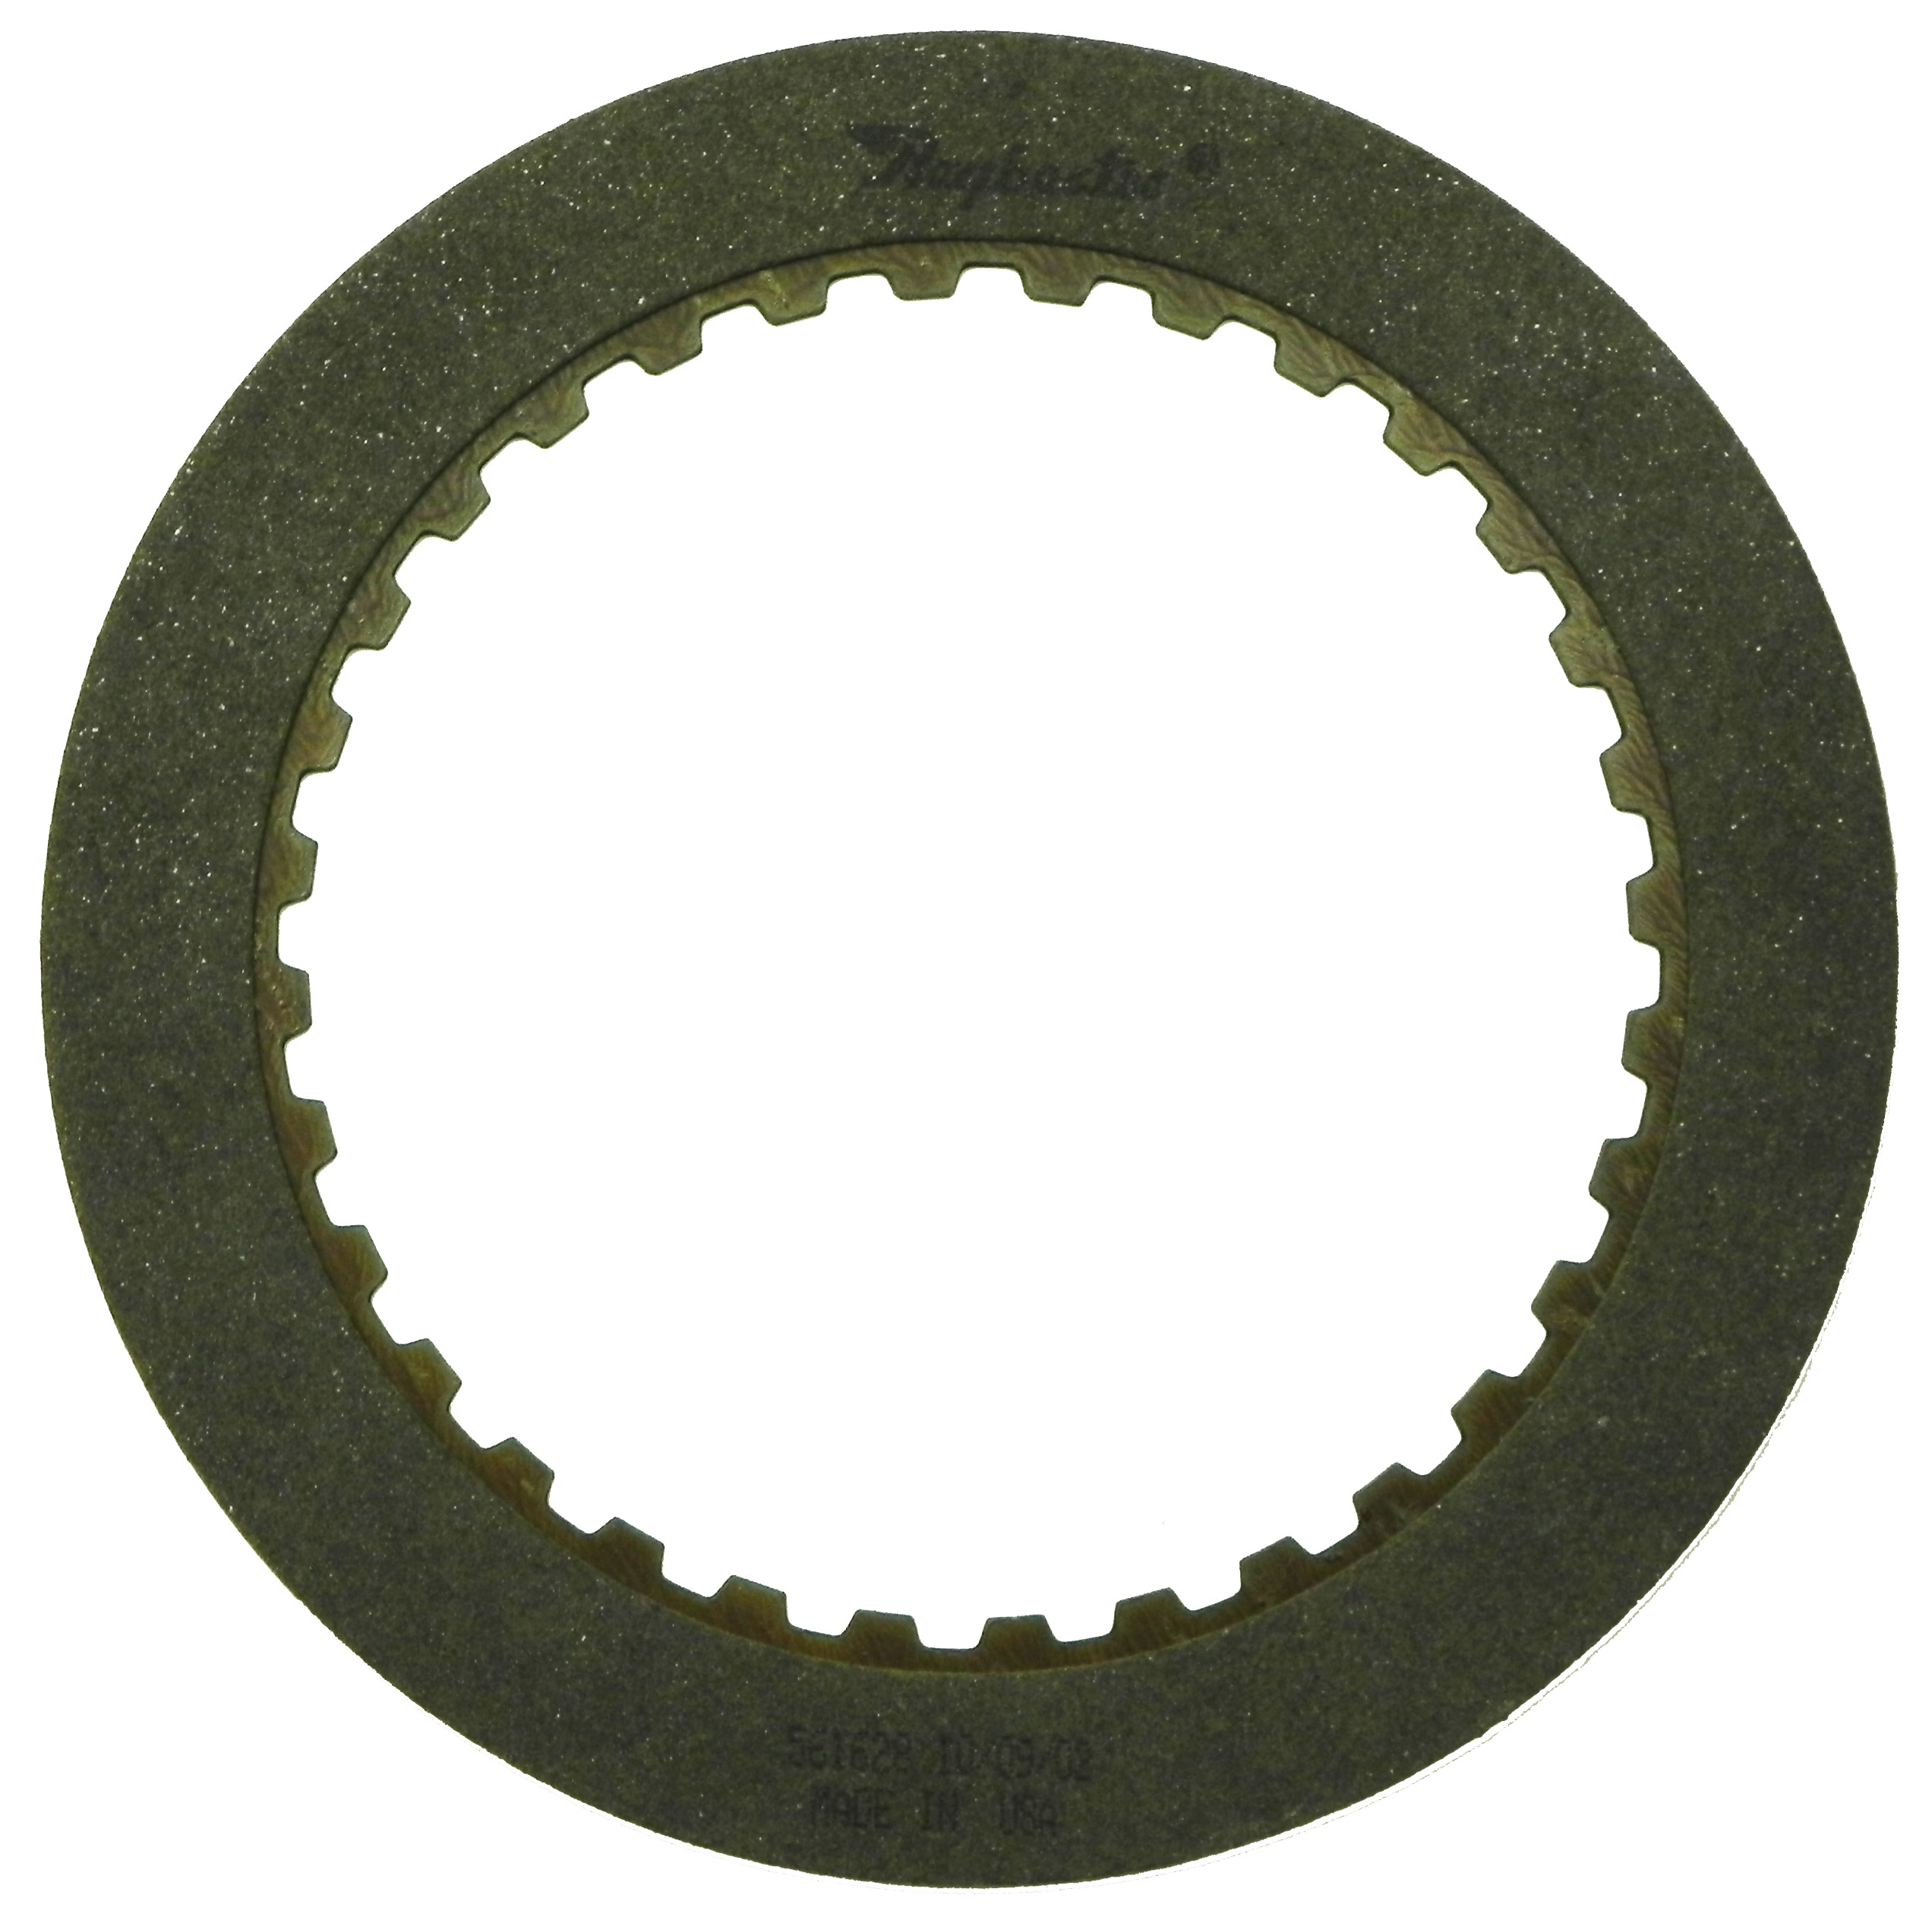 R561628 | 1983-ON Friction Clutch Plate High Energy 3rd (4T60) Olive, Single Sided, ID Spline High Energy